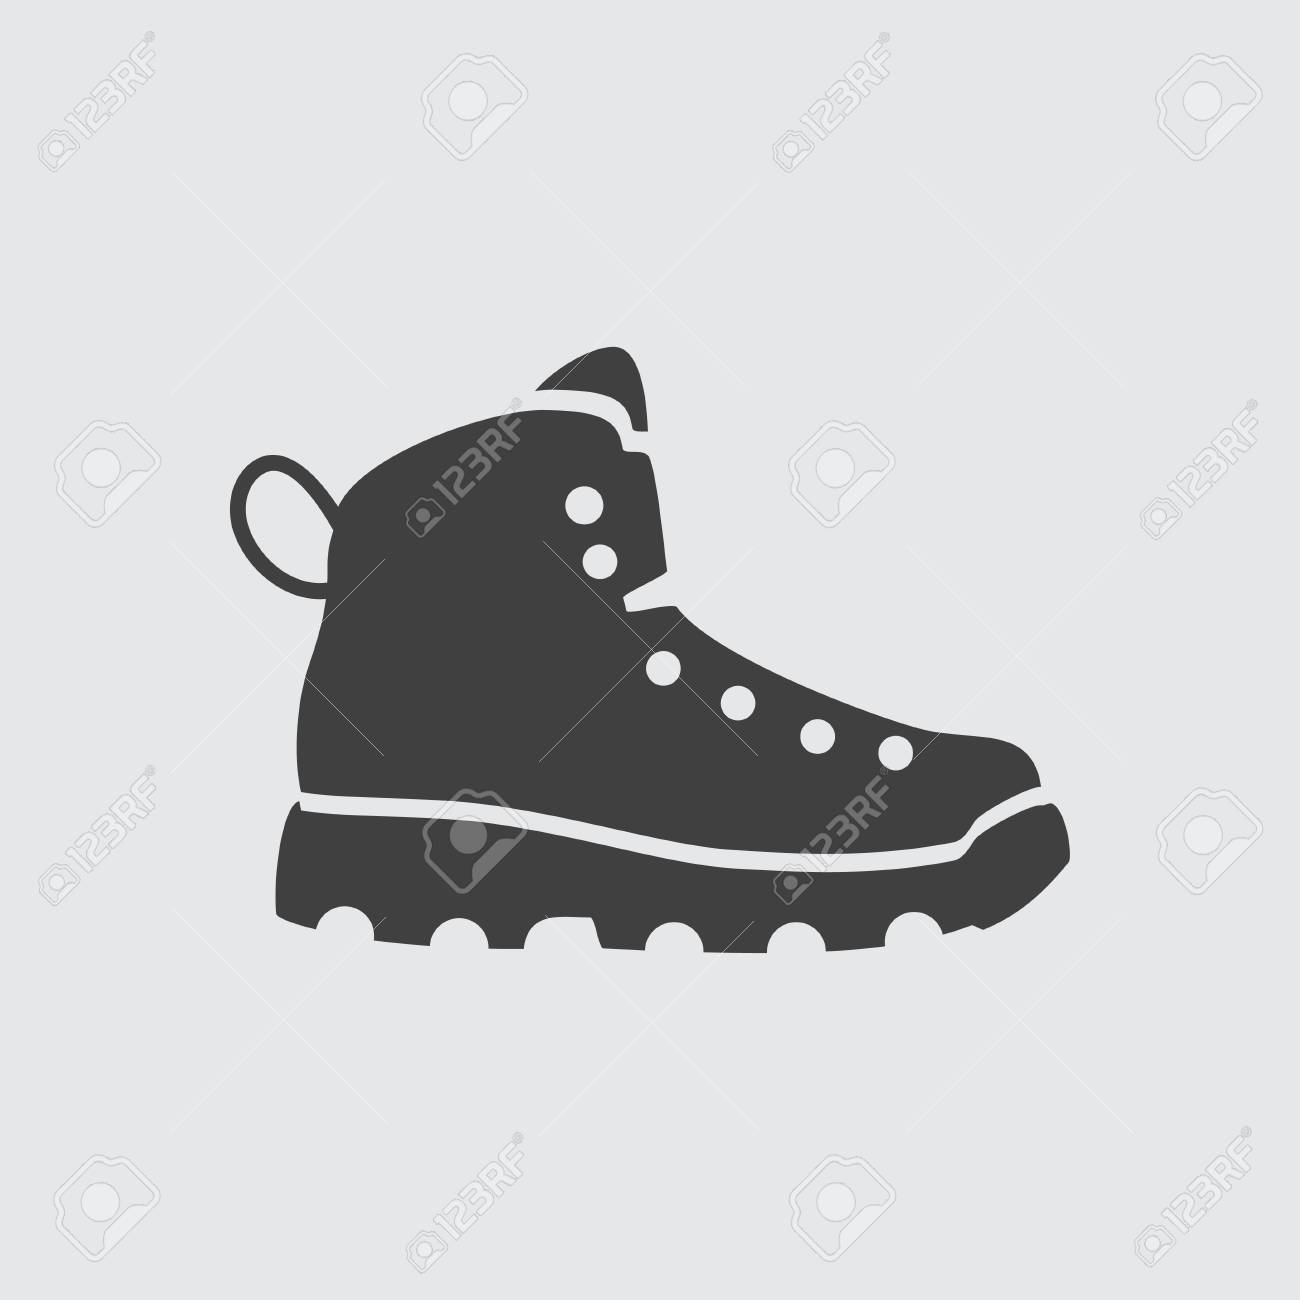 Boot icon illustration isolated vector sign symbol - 63203110